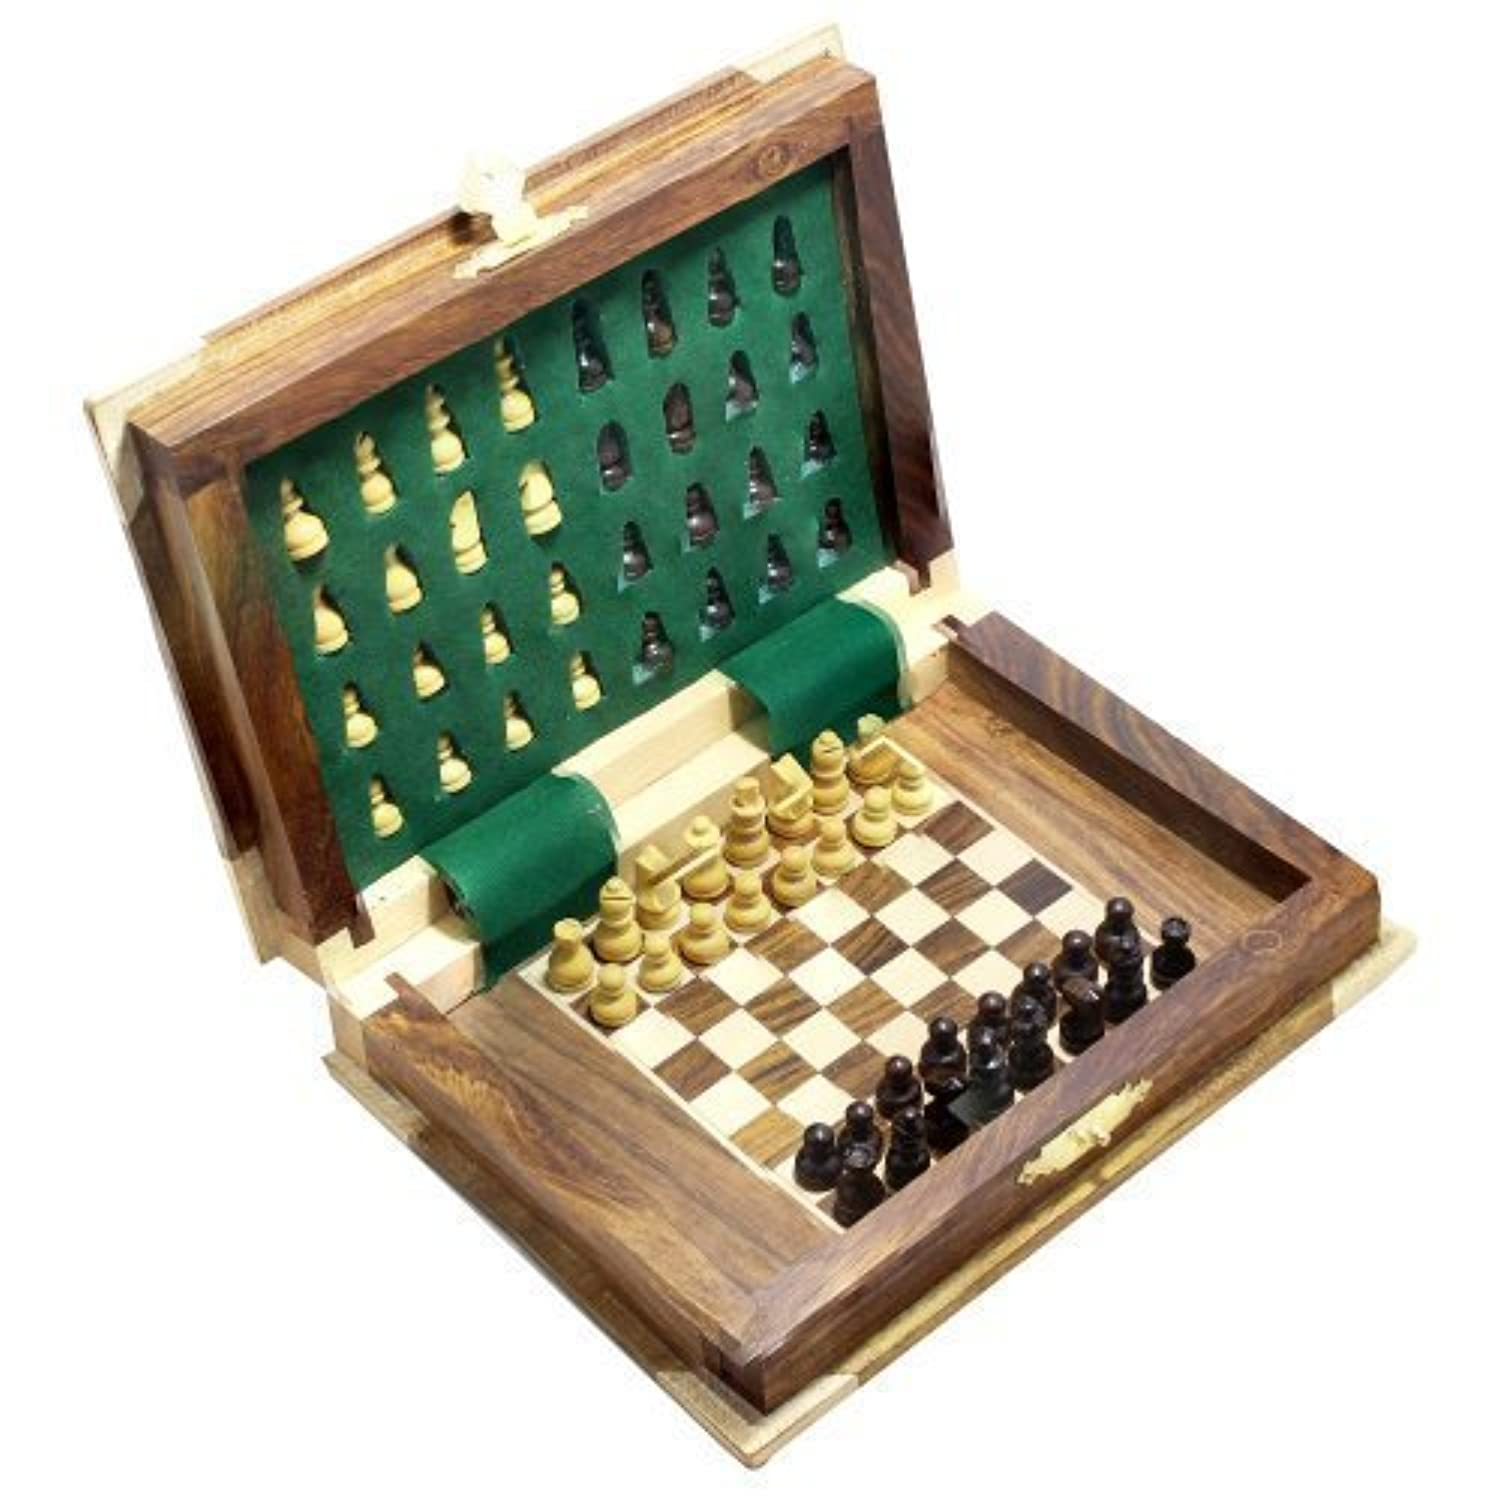 Book Shape Small Board Game Chess and Pieces, Set Wooden Game 7 x 5 Inches [並行輸入品]